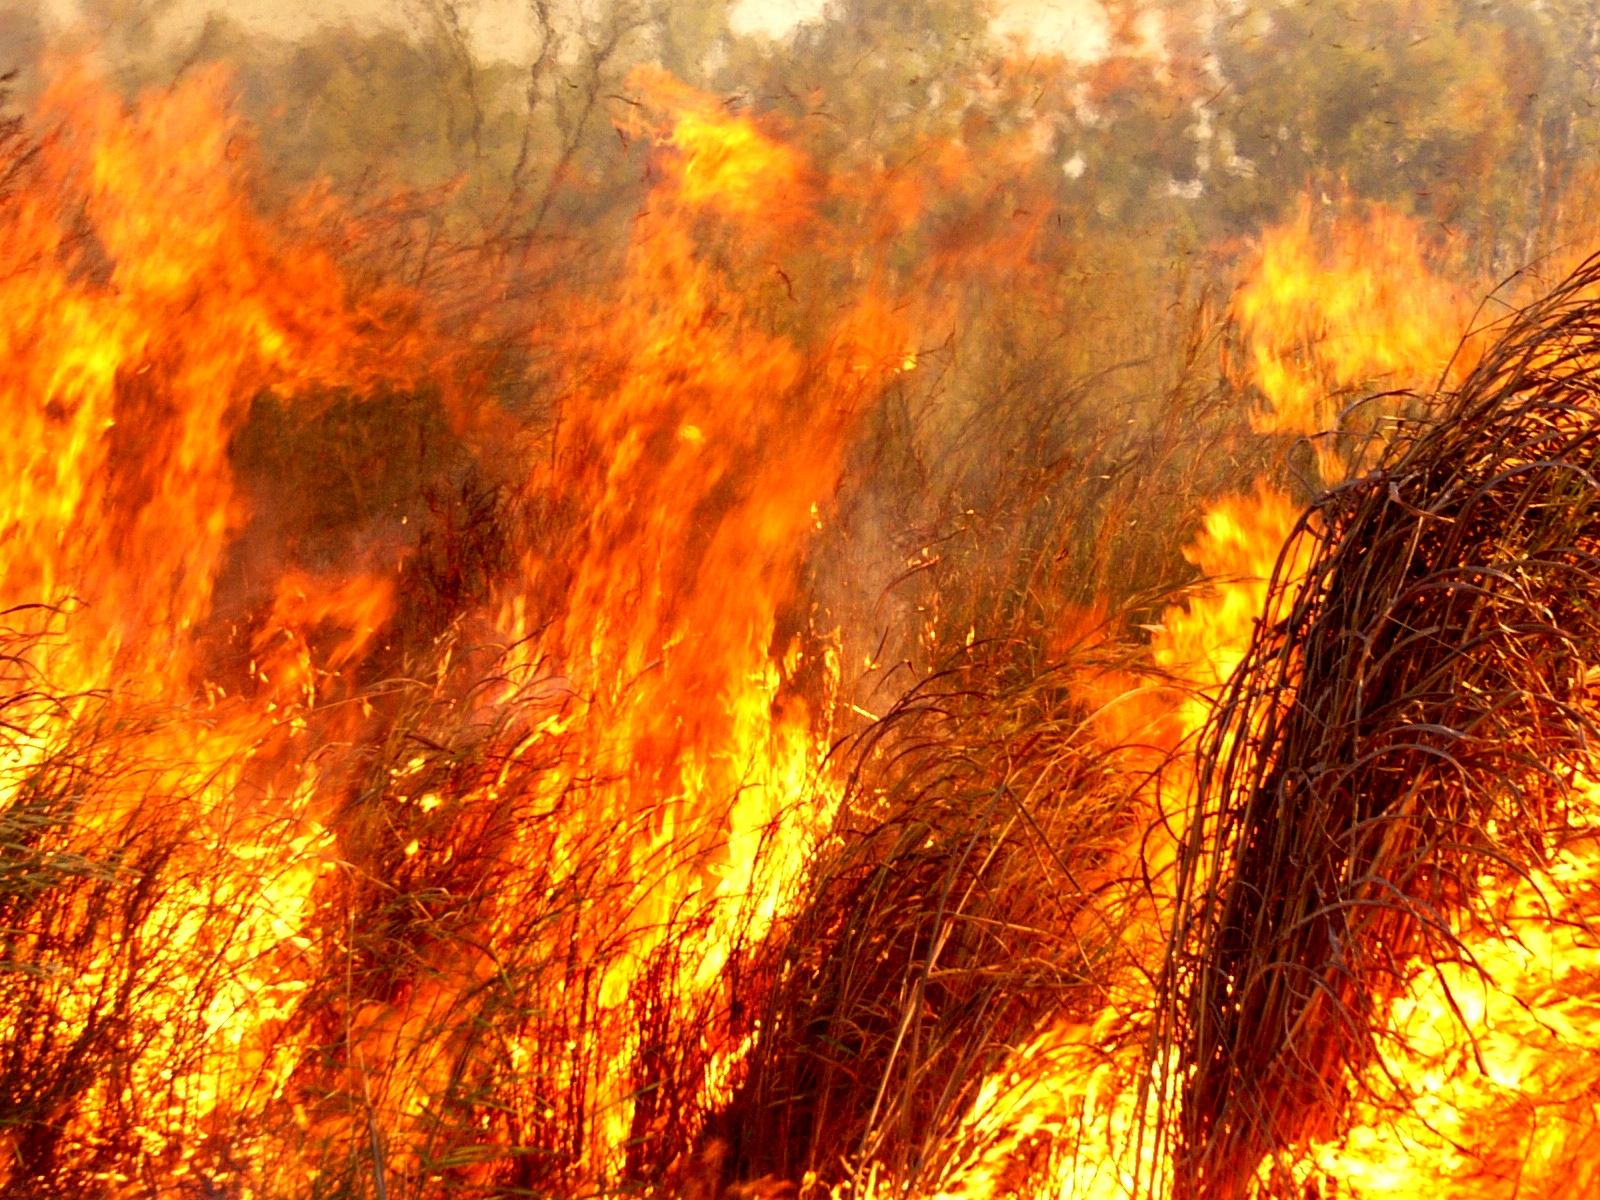 An inferno of Gamba Grass in northern Australia  (photo (c) Samantha Setterfield)